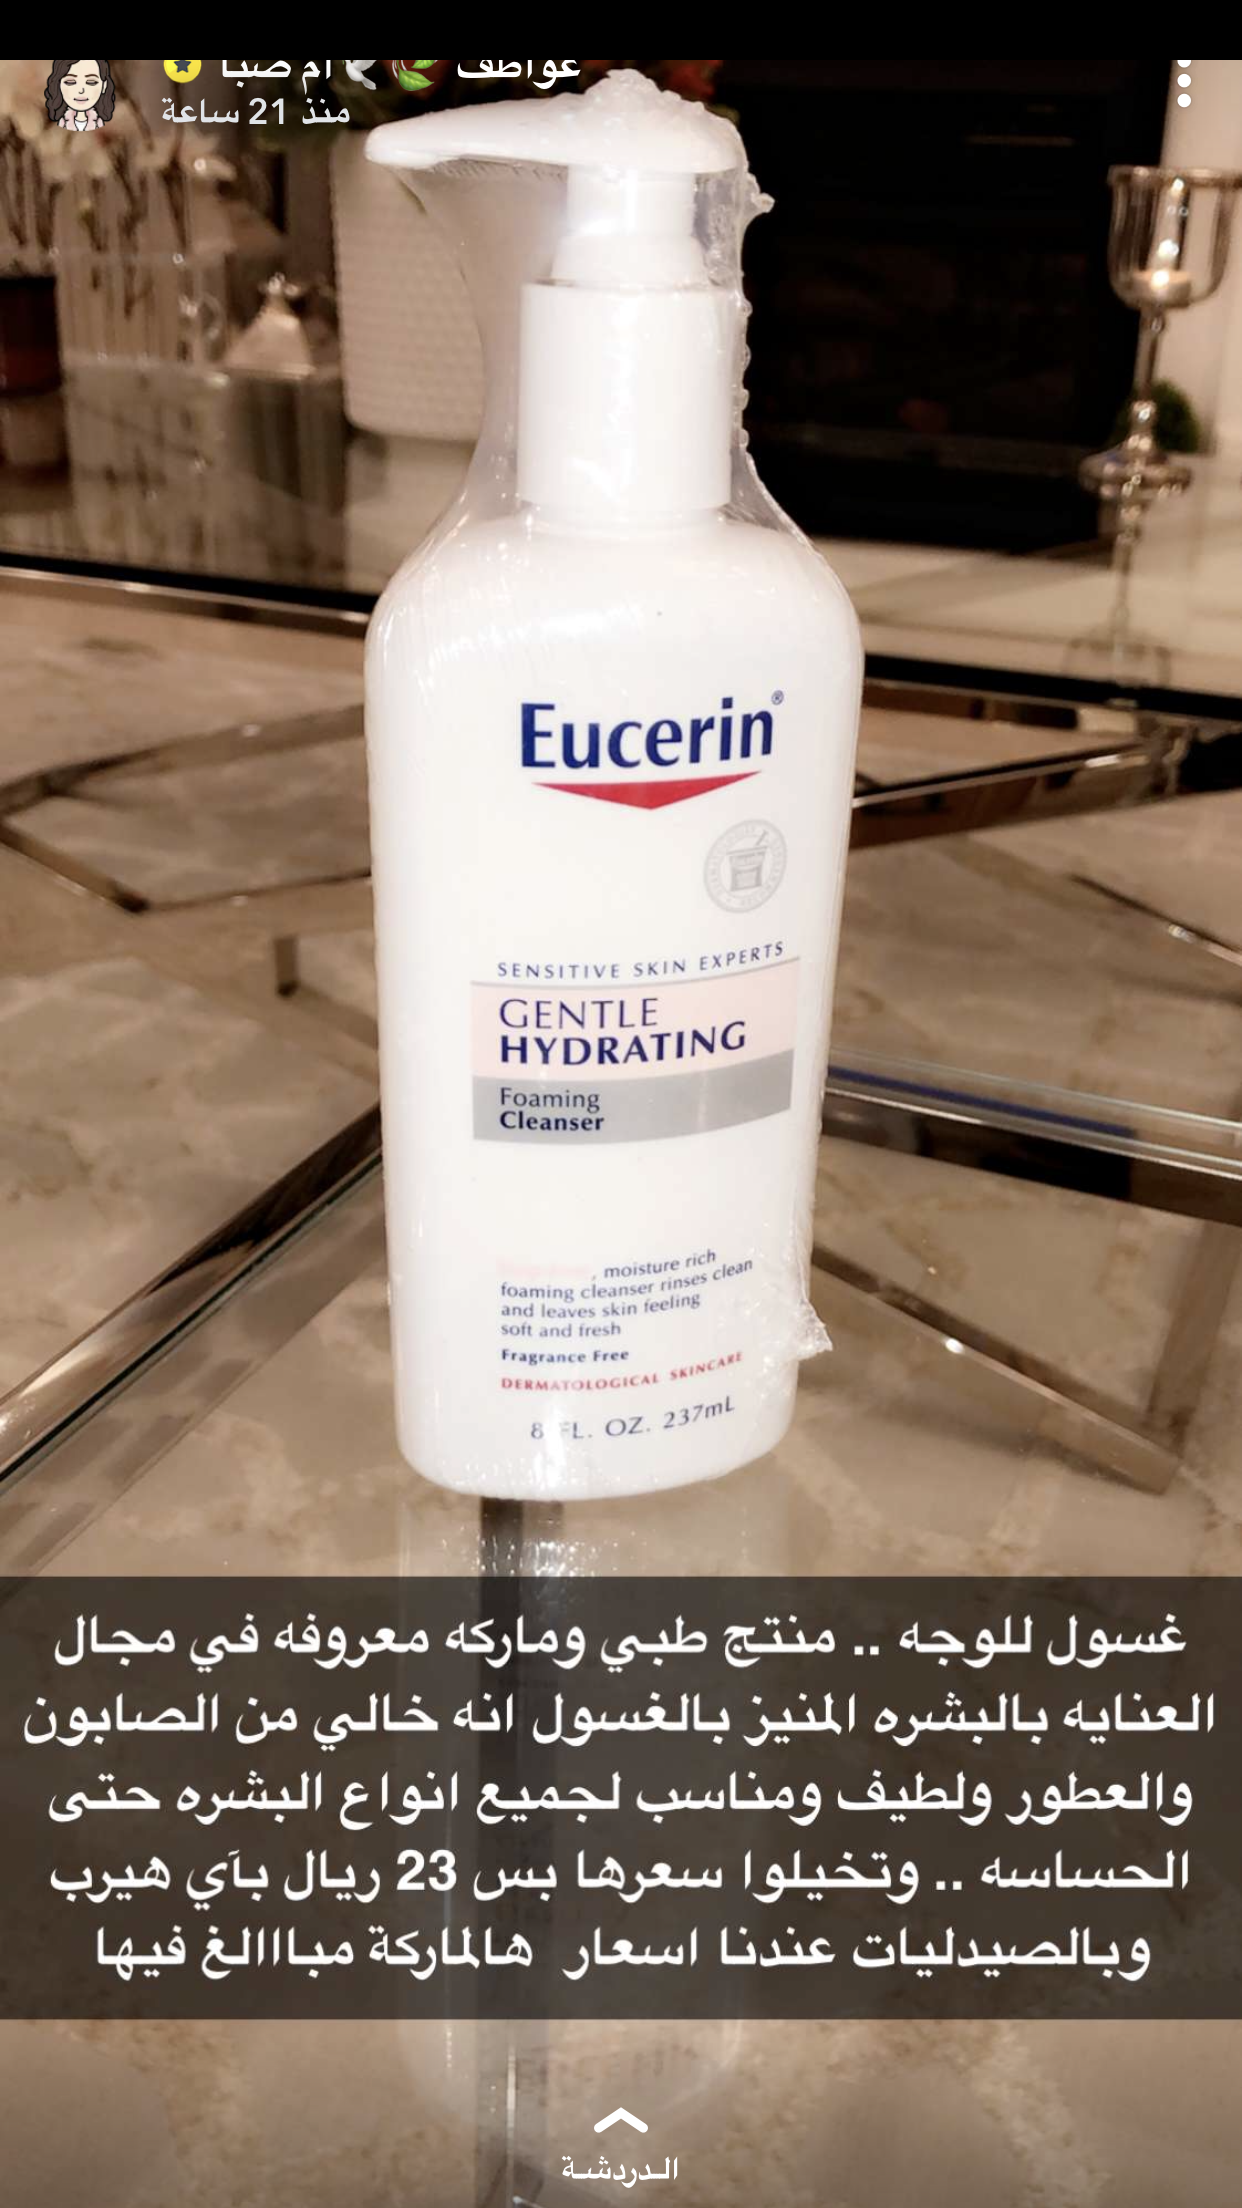 Pin By Moonlight On ام صبا Beauty Skin Care Routine Skin Care Women Body Care Routine